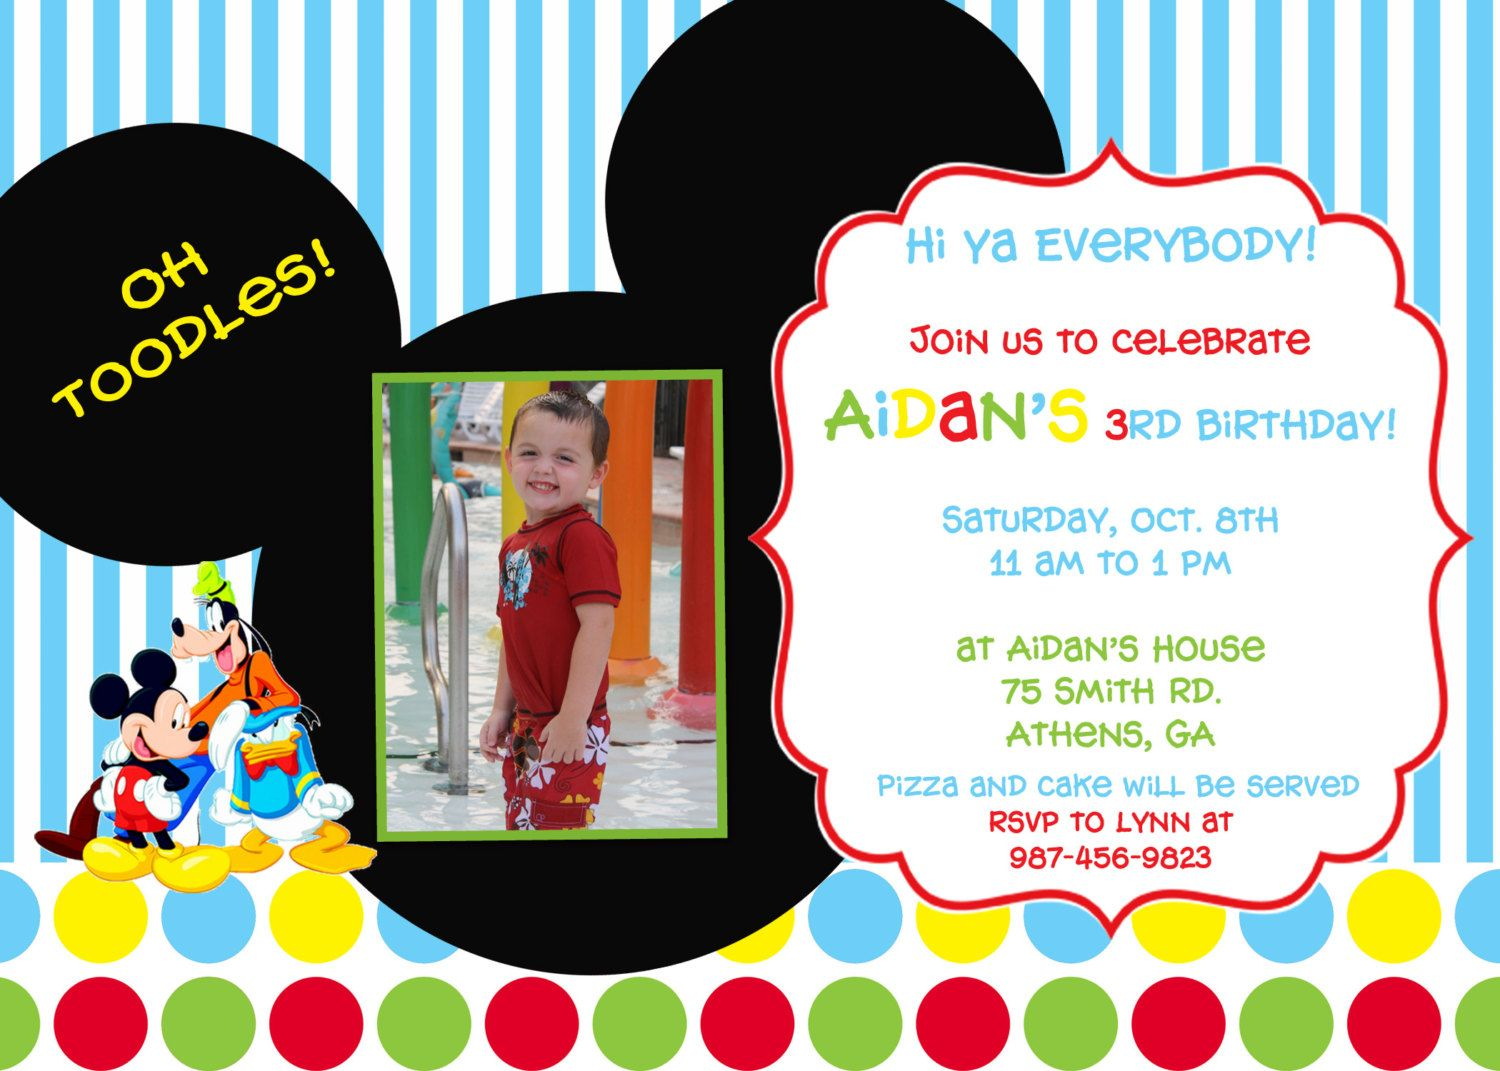 Mickey Mouse Clubhouse Birthday Party Invitation Via Etsy - Birthday invitation mickey mouse